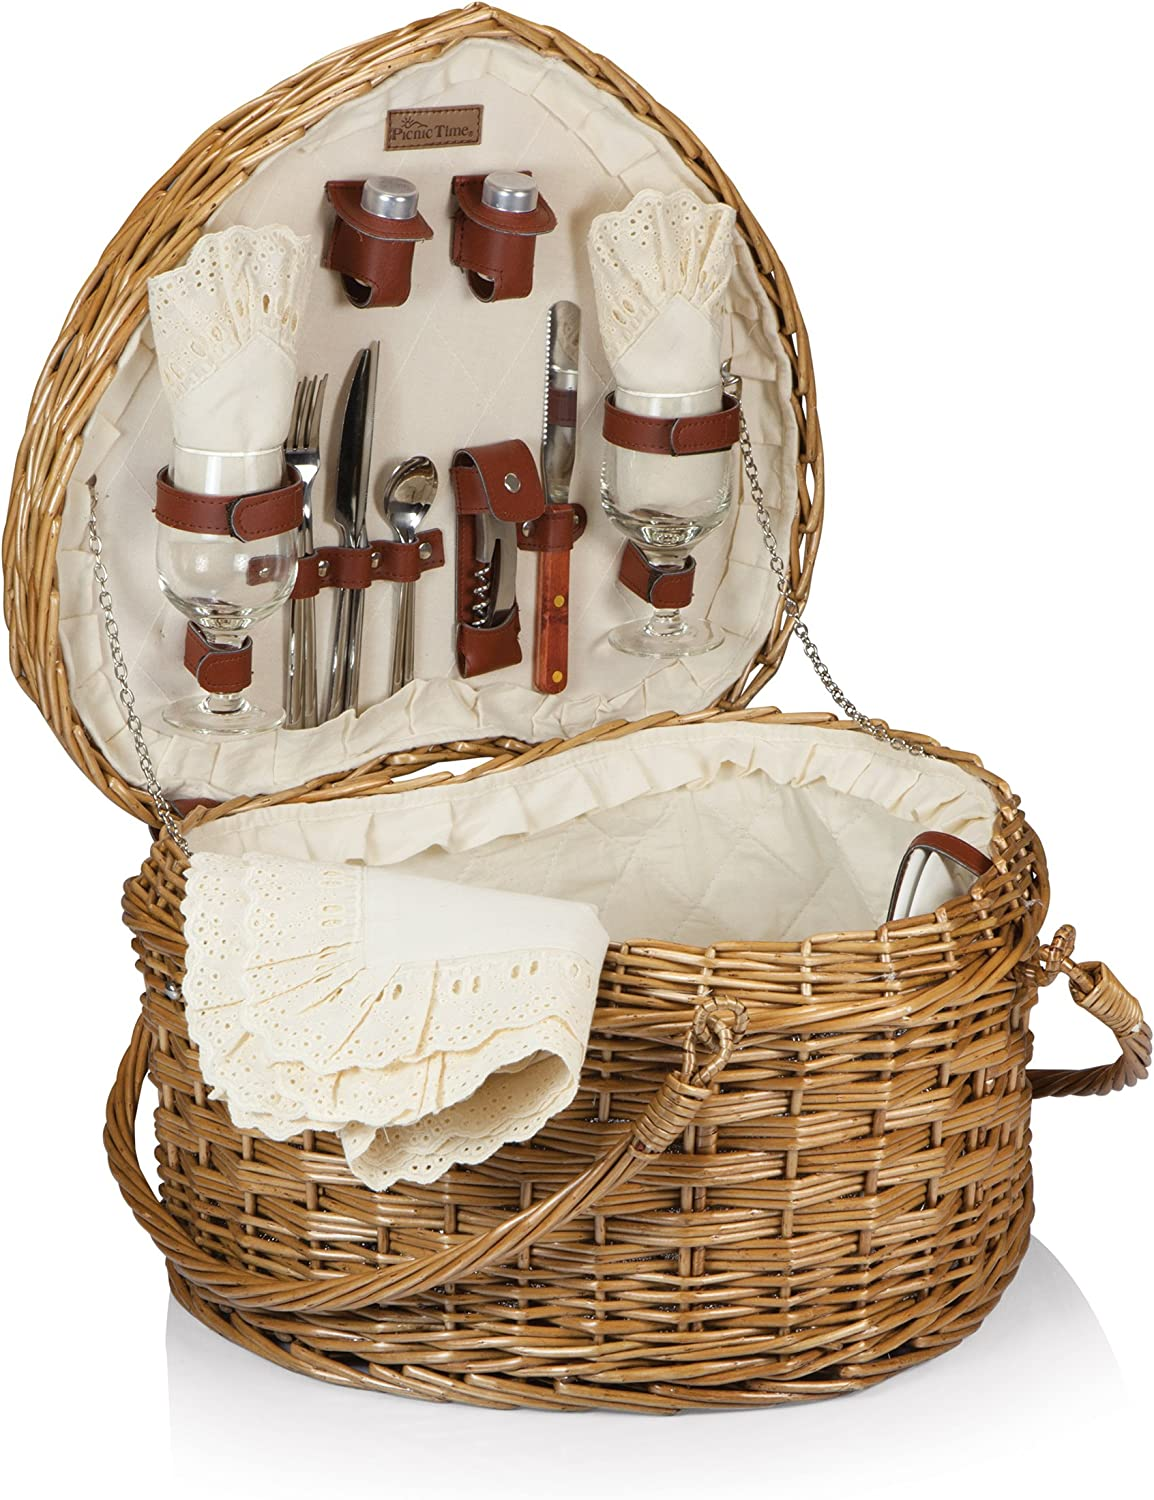 Amazon Com Picnic Time Heart Willow Picnic Basket With Deluxe Service For Two Kitchen Dining